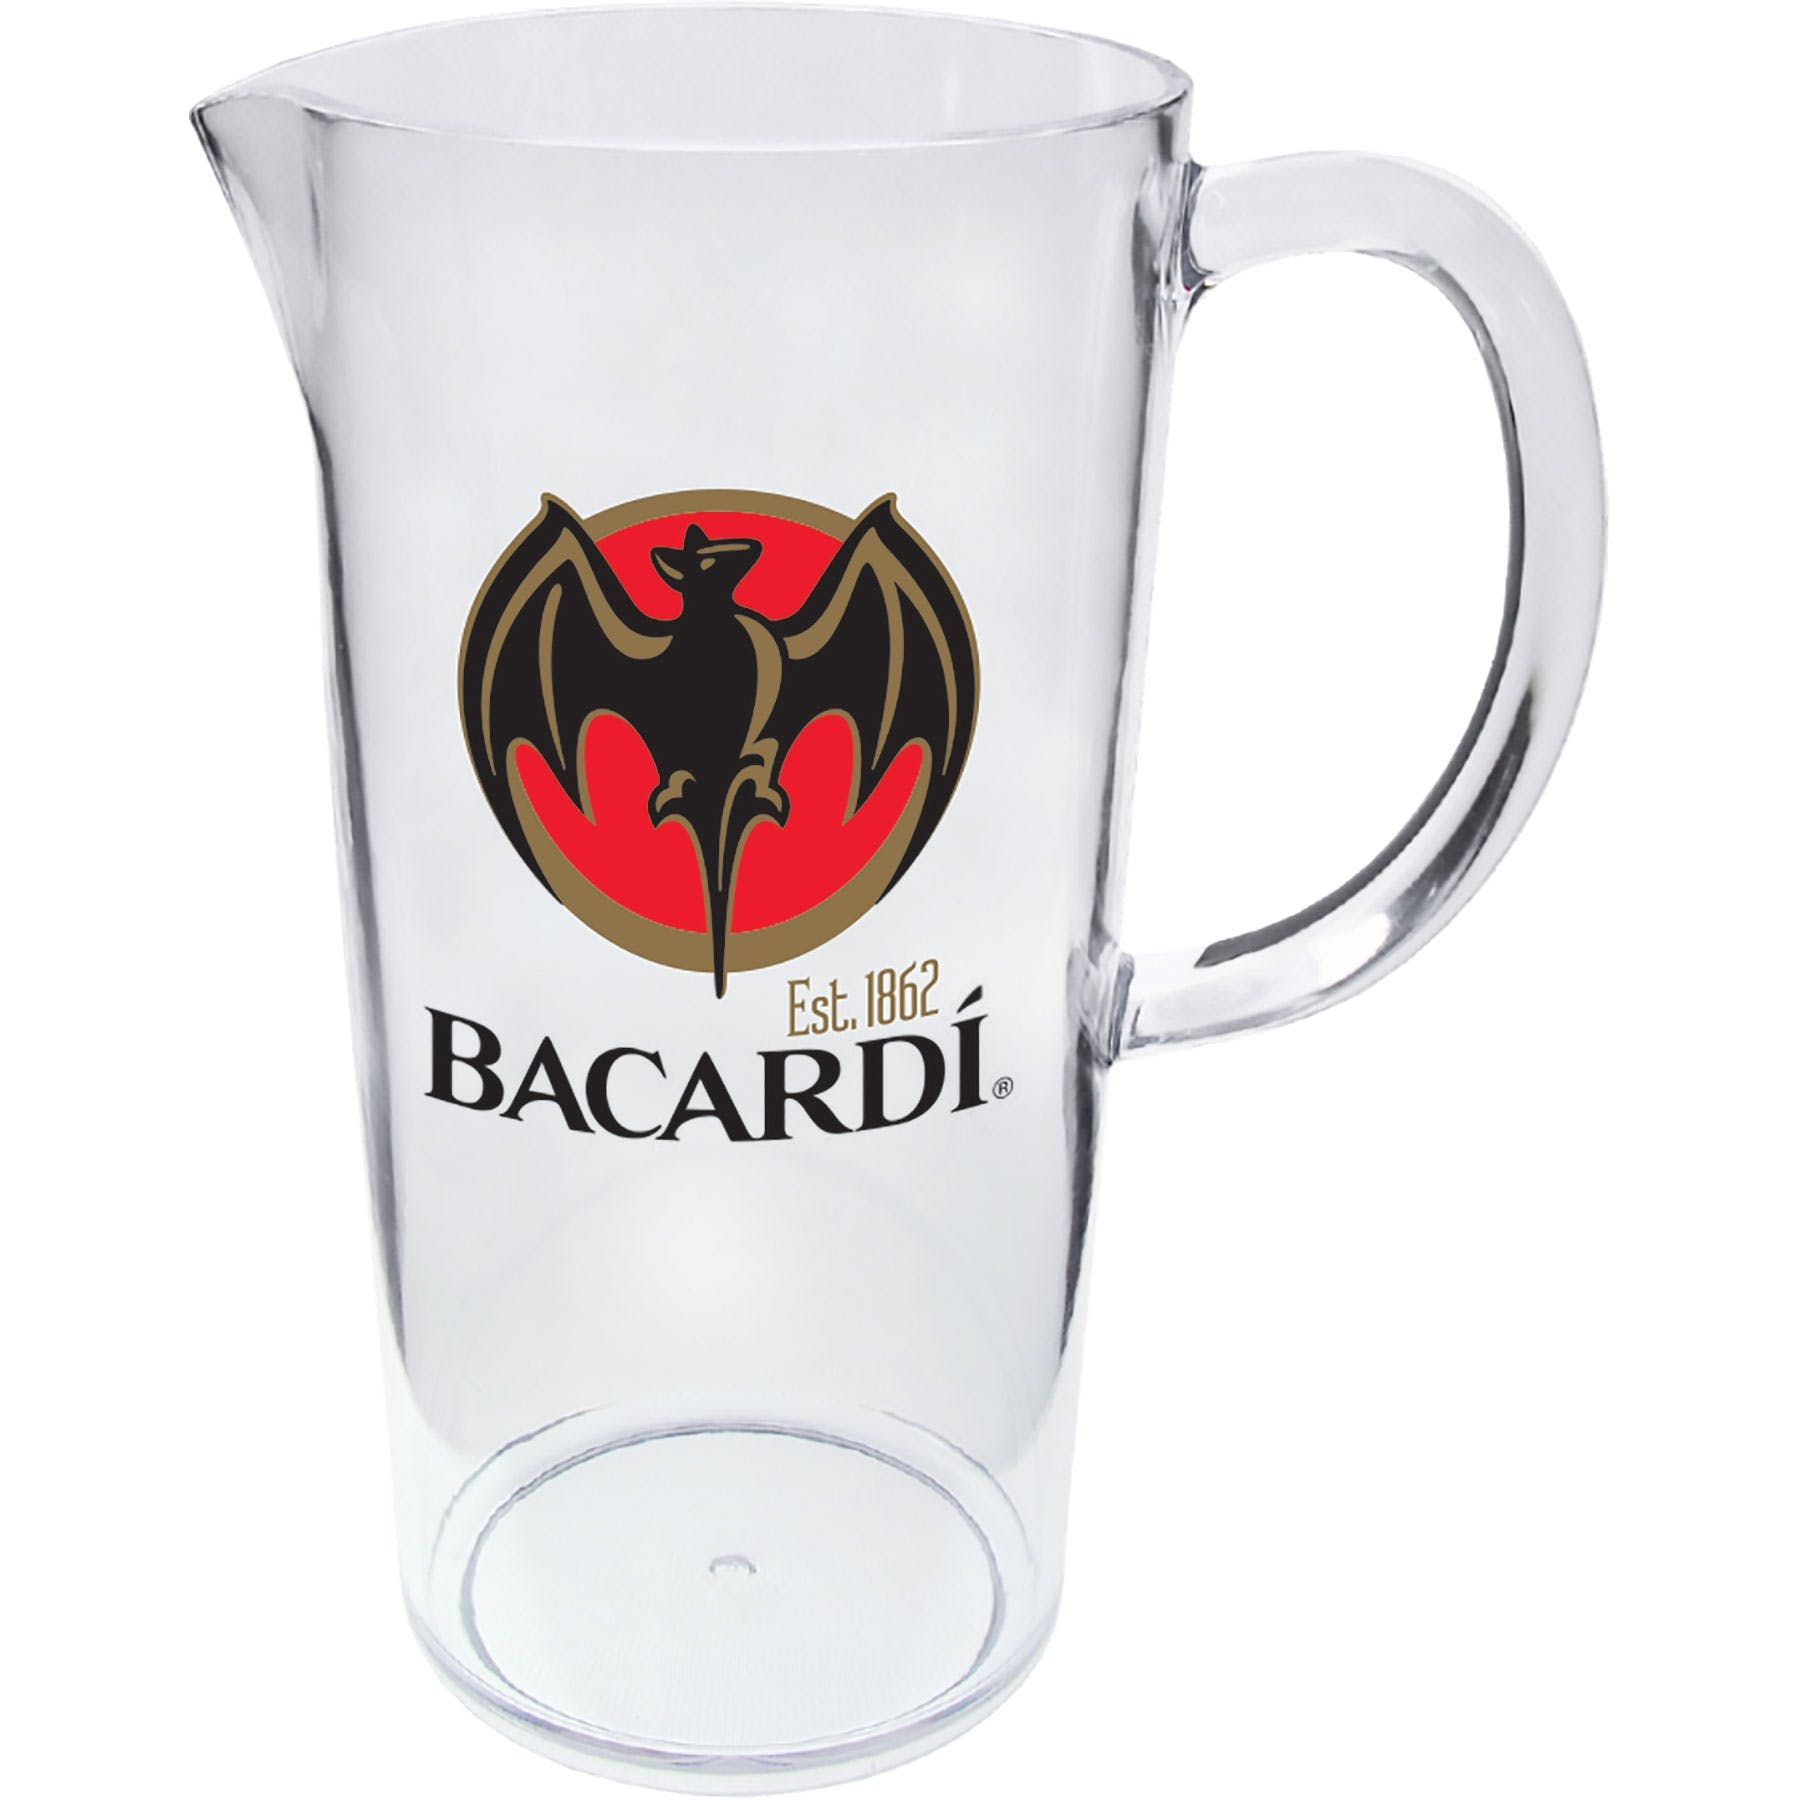 32 Oz./ 40 Oz. Pitcher (Item # HBJJN-GUWMM) Beer pitcher sold by InkEasy